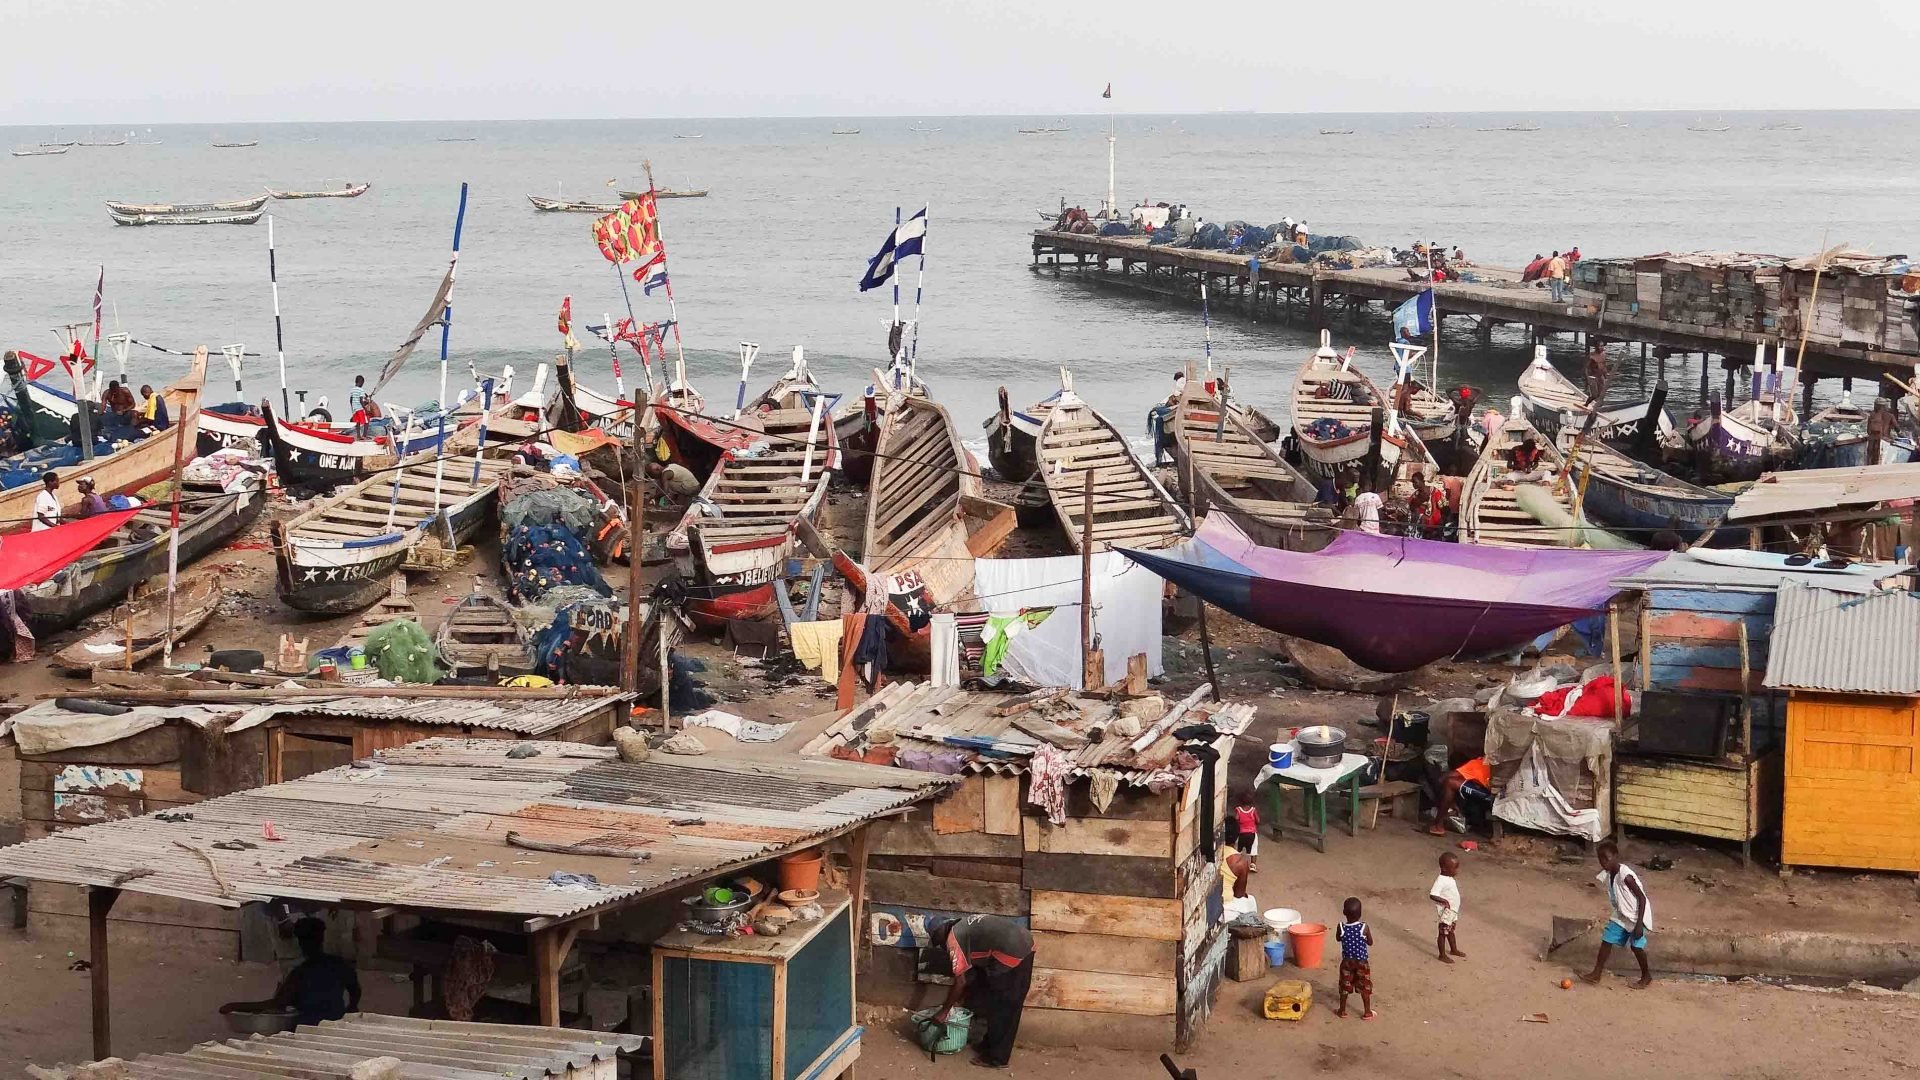 The hustle and bustle of a fishing community in Jamestown, Accra, Ghana.